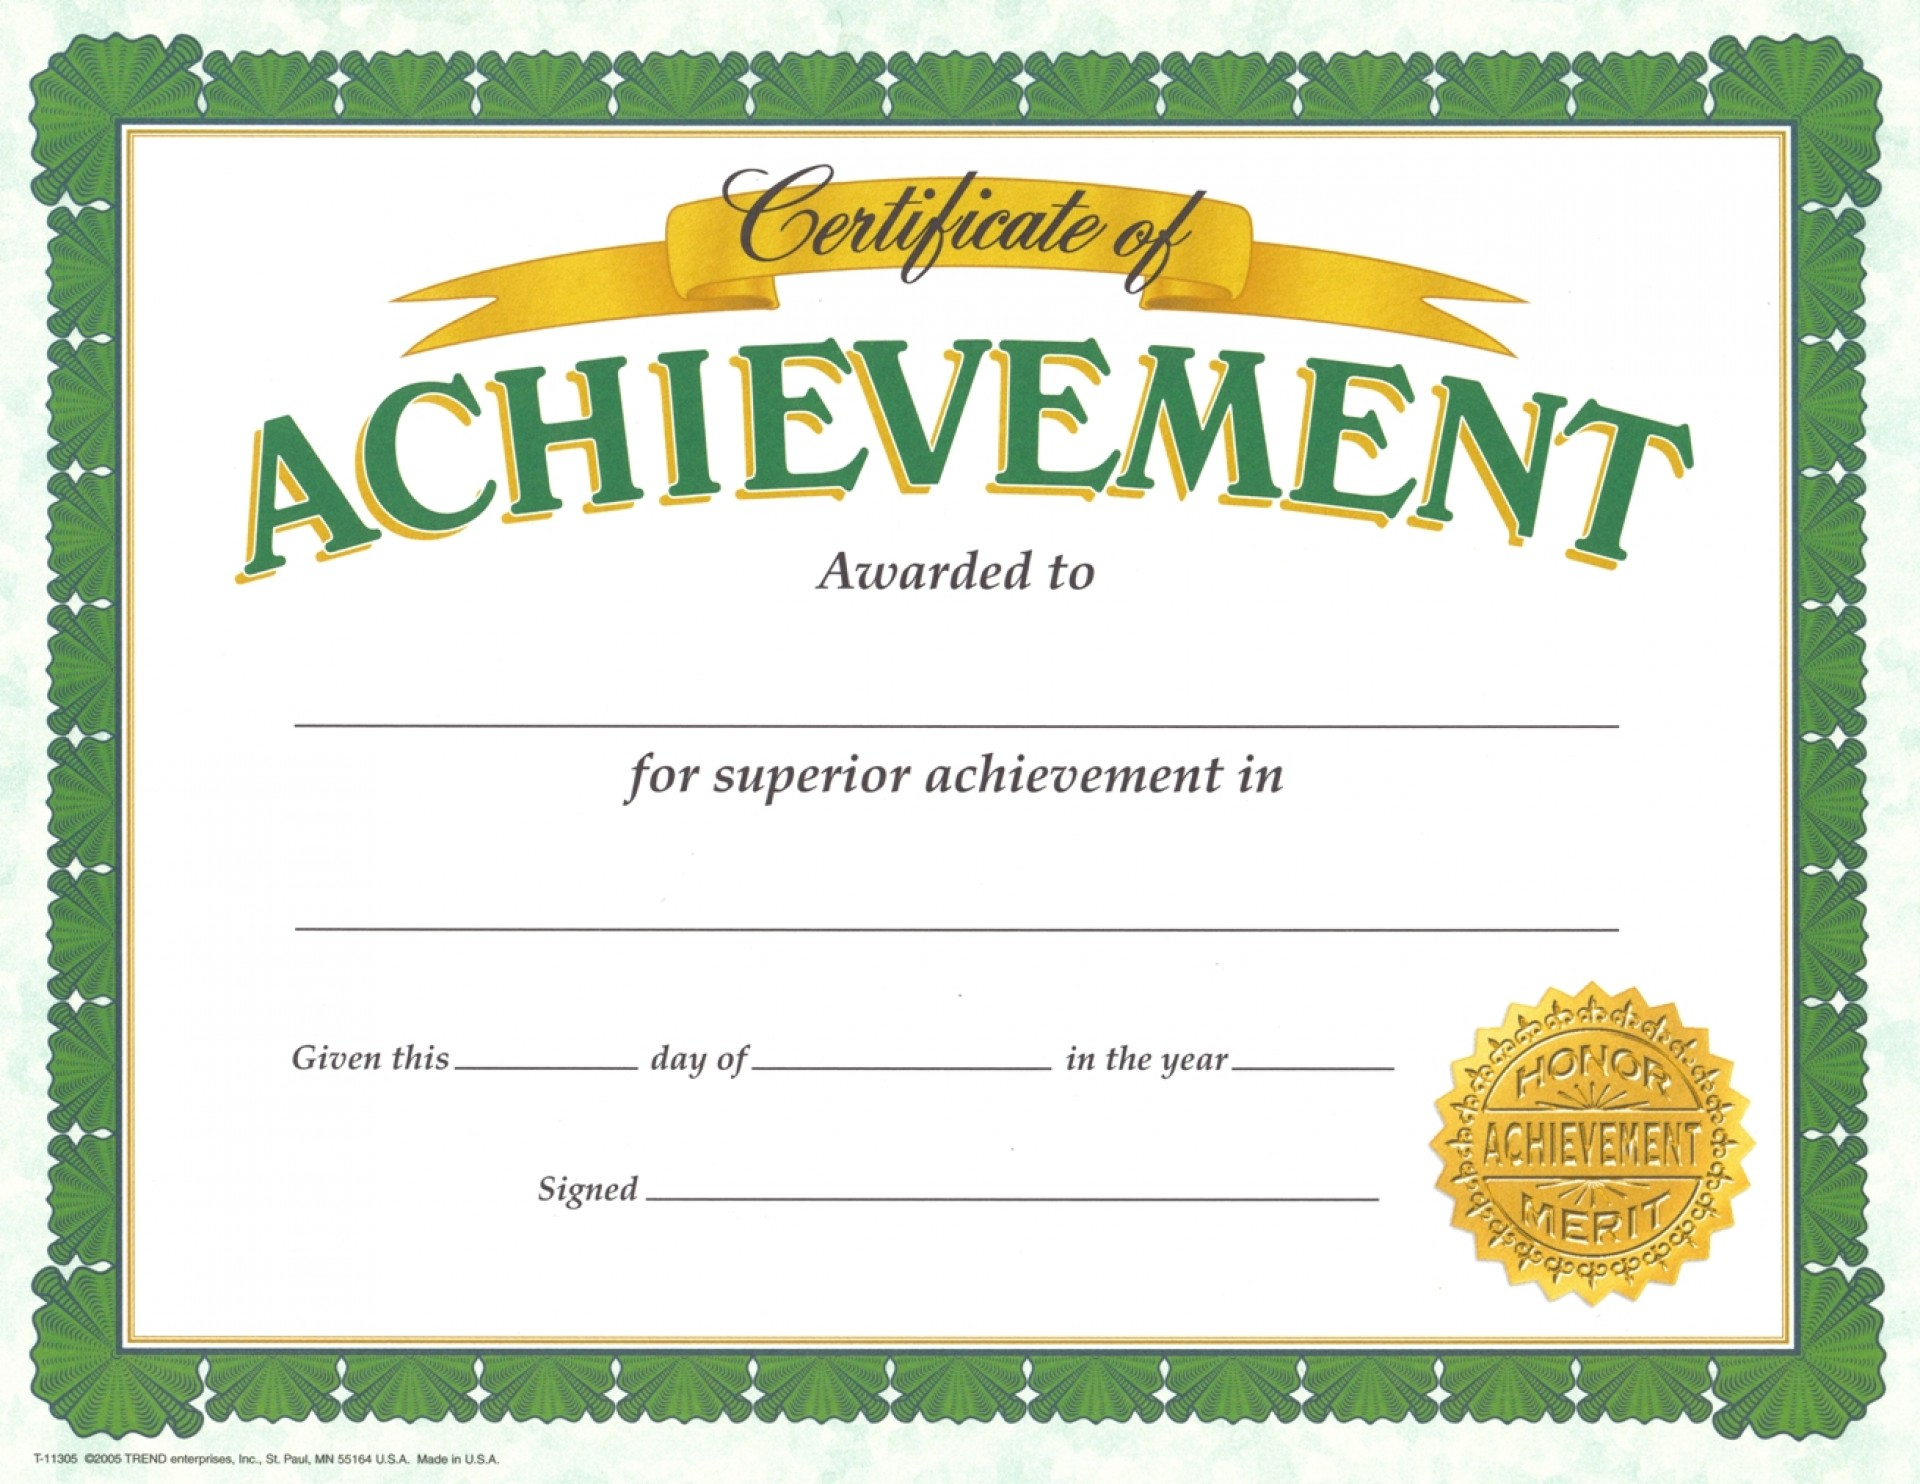 002 Magnificent Certificate Of Achievement Template Free High Definition  Award Download Word1920